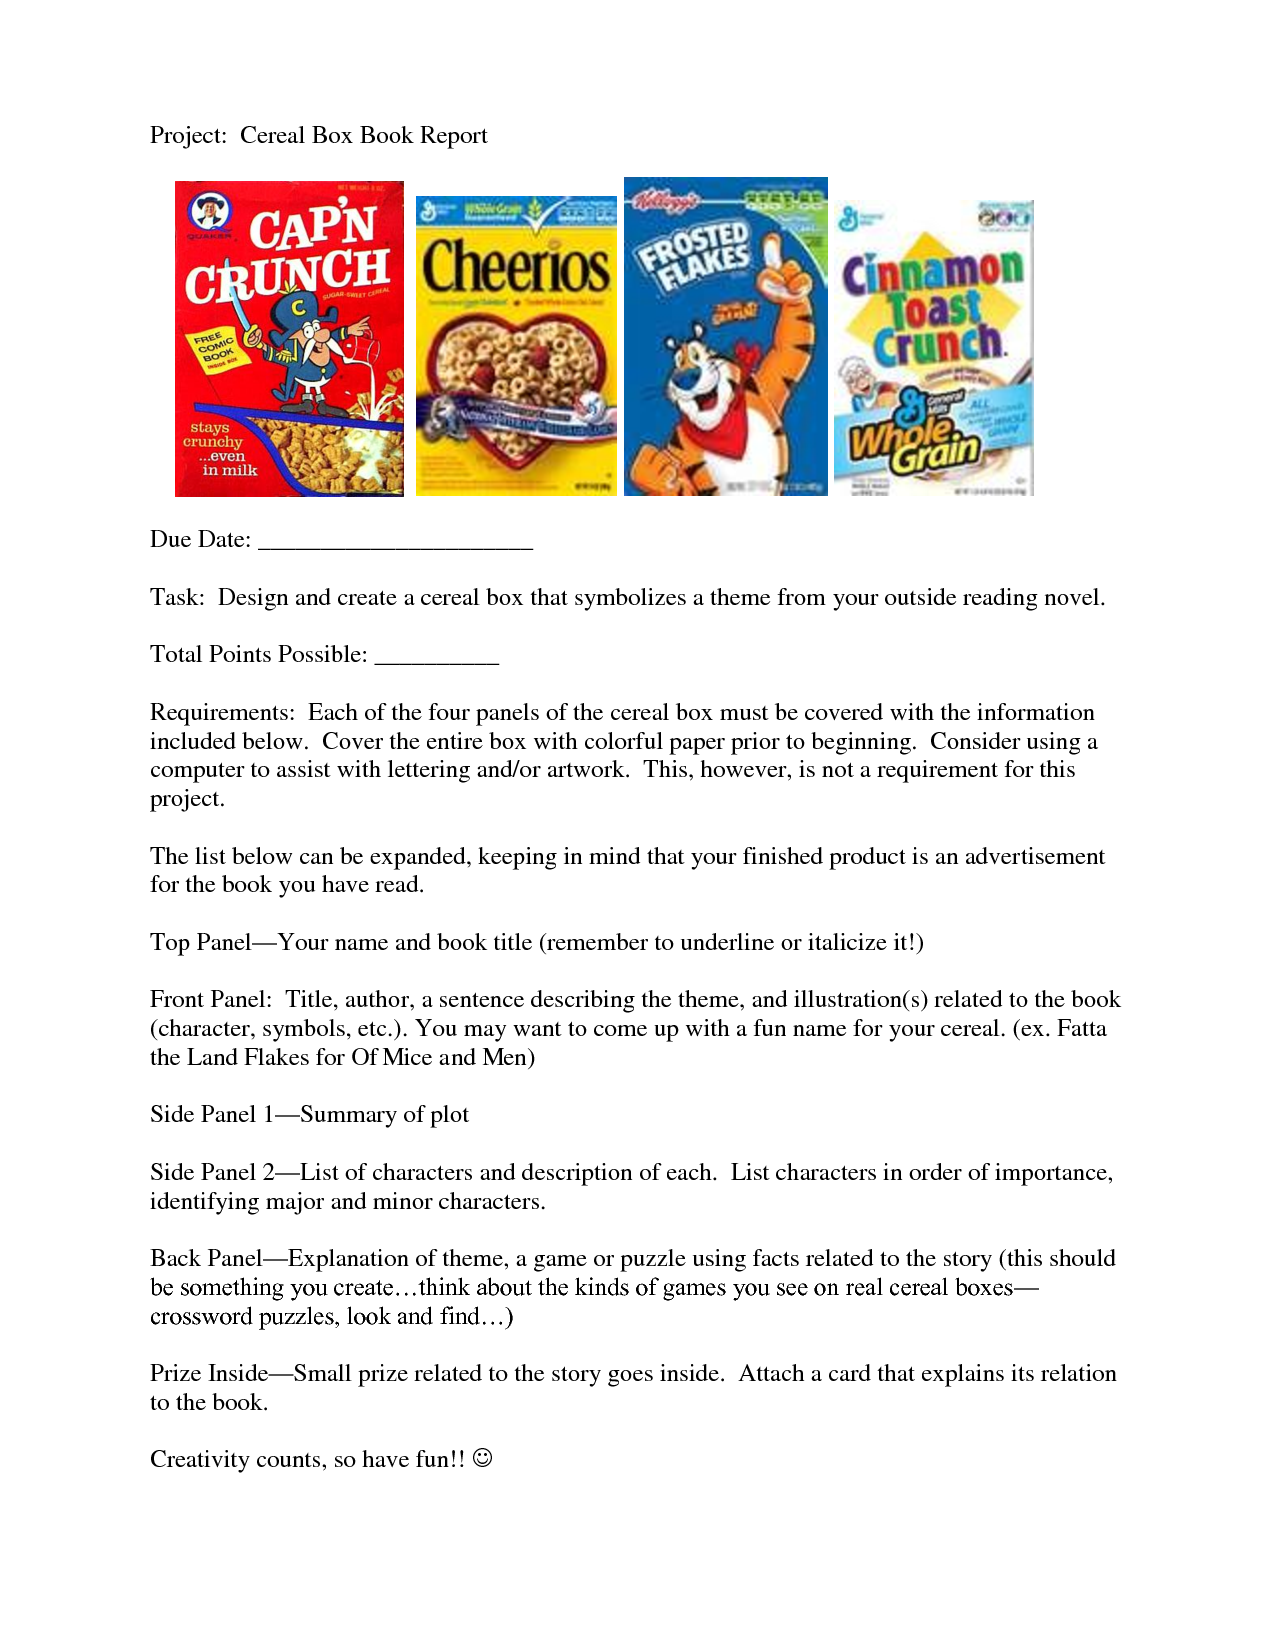 Cereal Box Book Report Template  Project Cereal Box Book Report